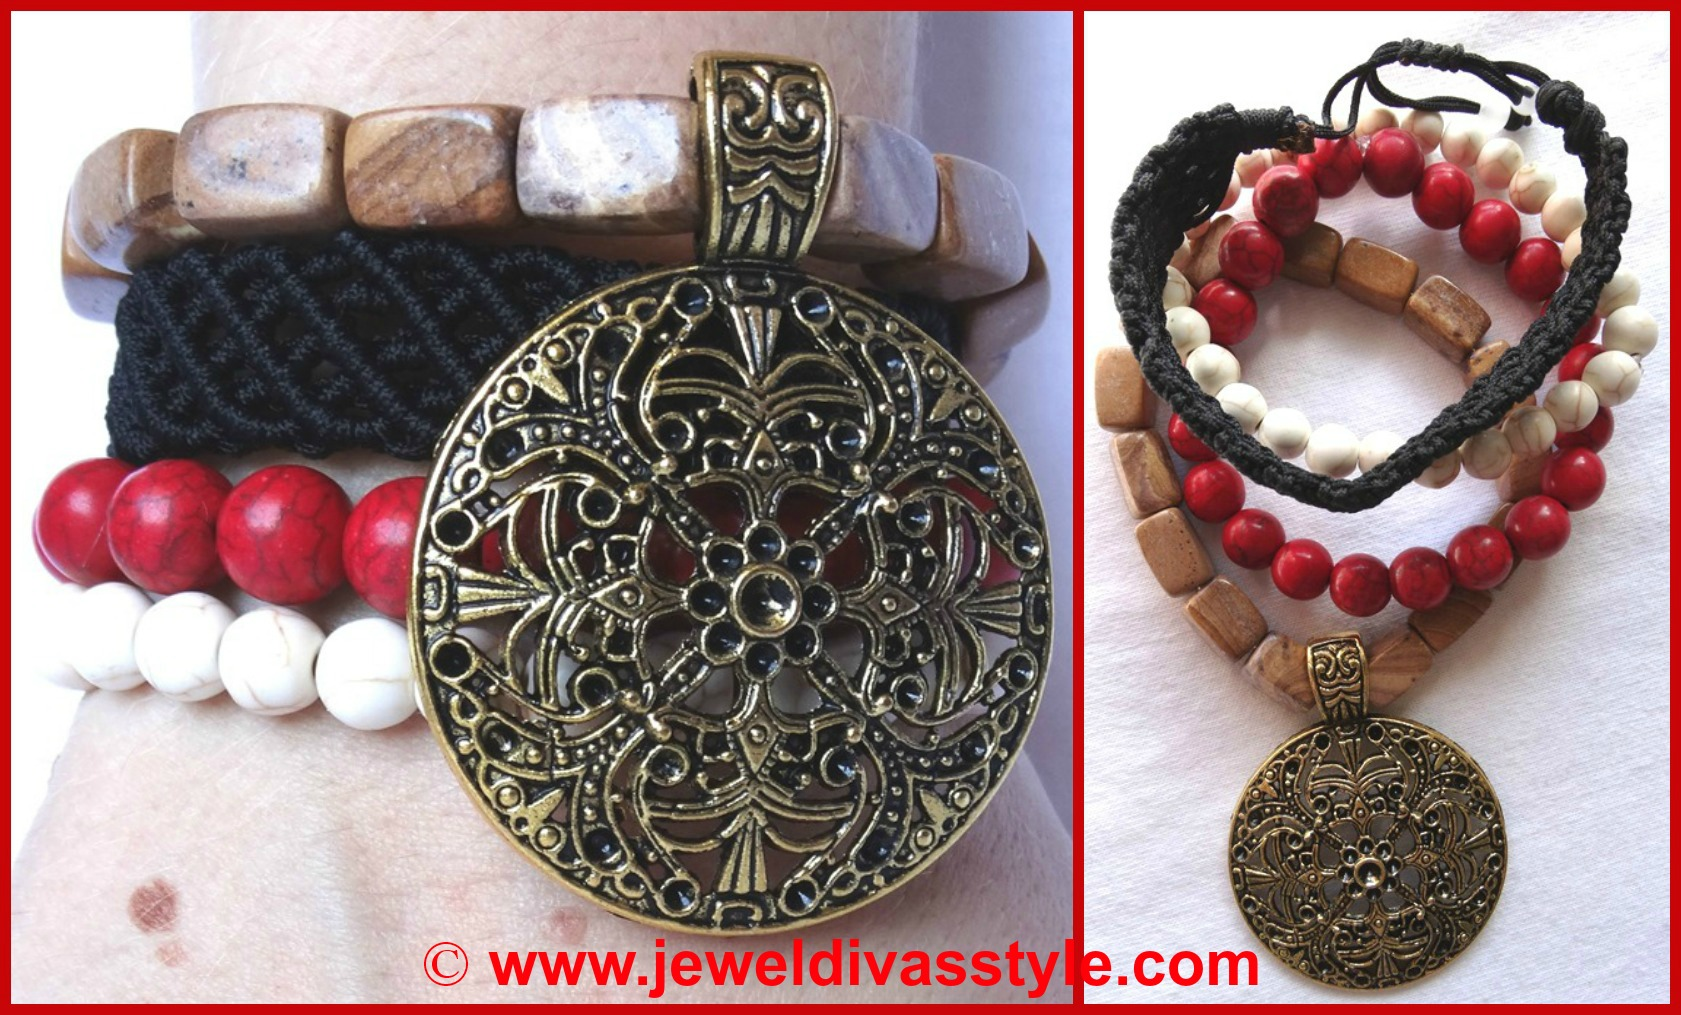 JDS GYPSY LEE ROSE BRACELET STACK